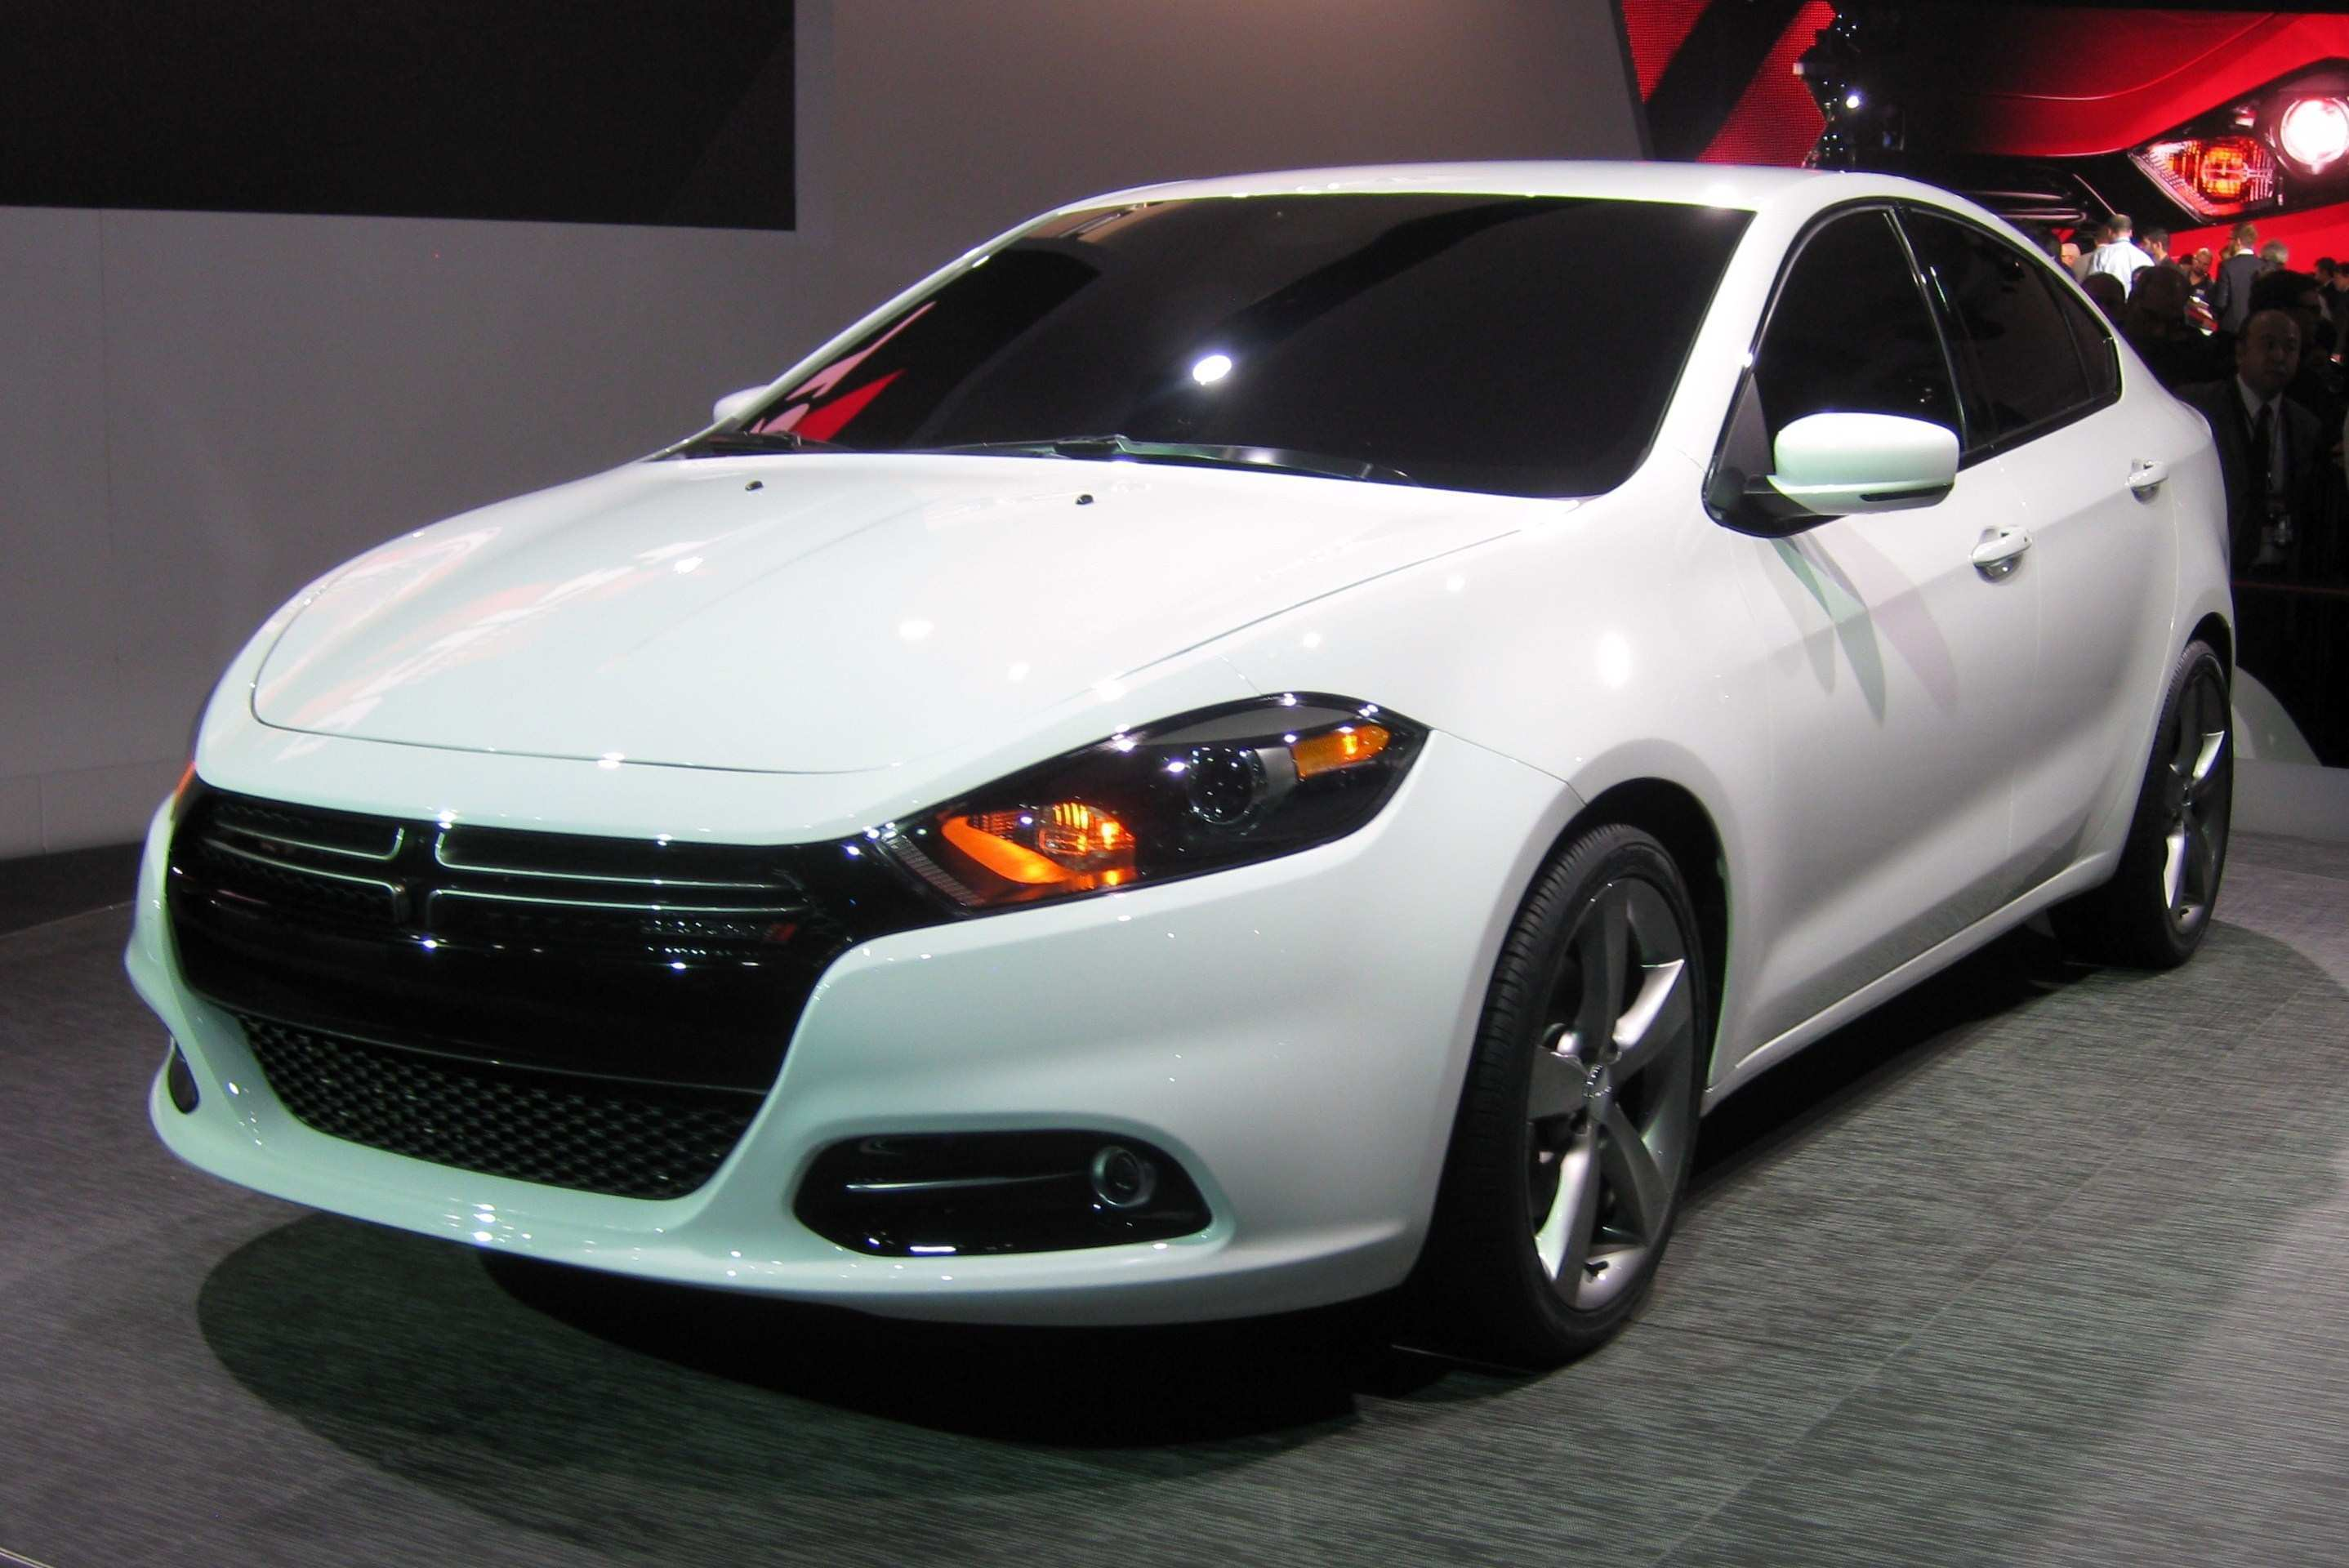 80 New 2019 Dodge Dart Srt4 Price And Release Date